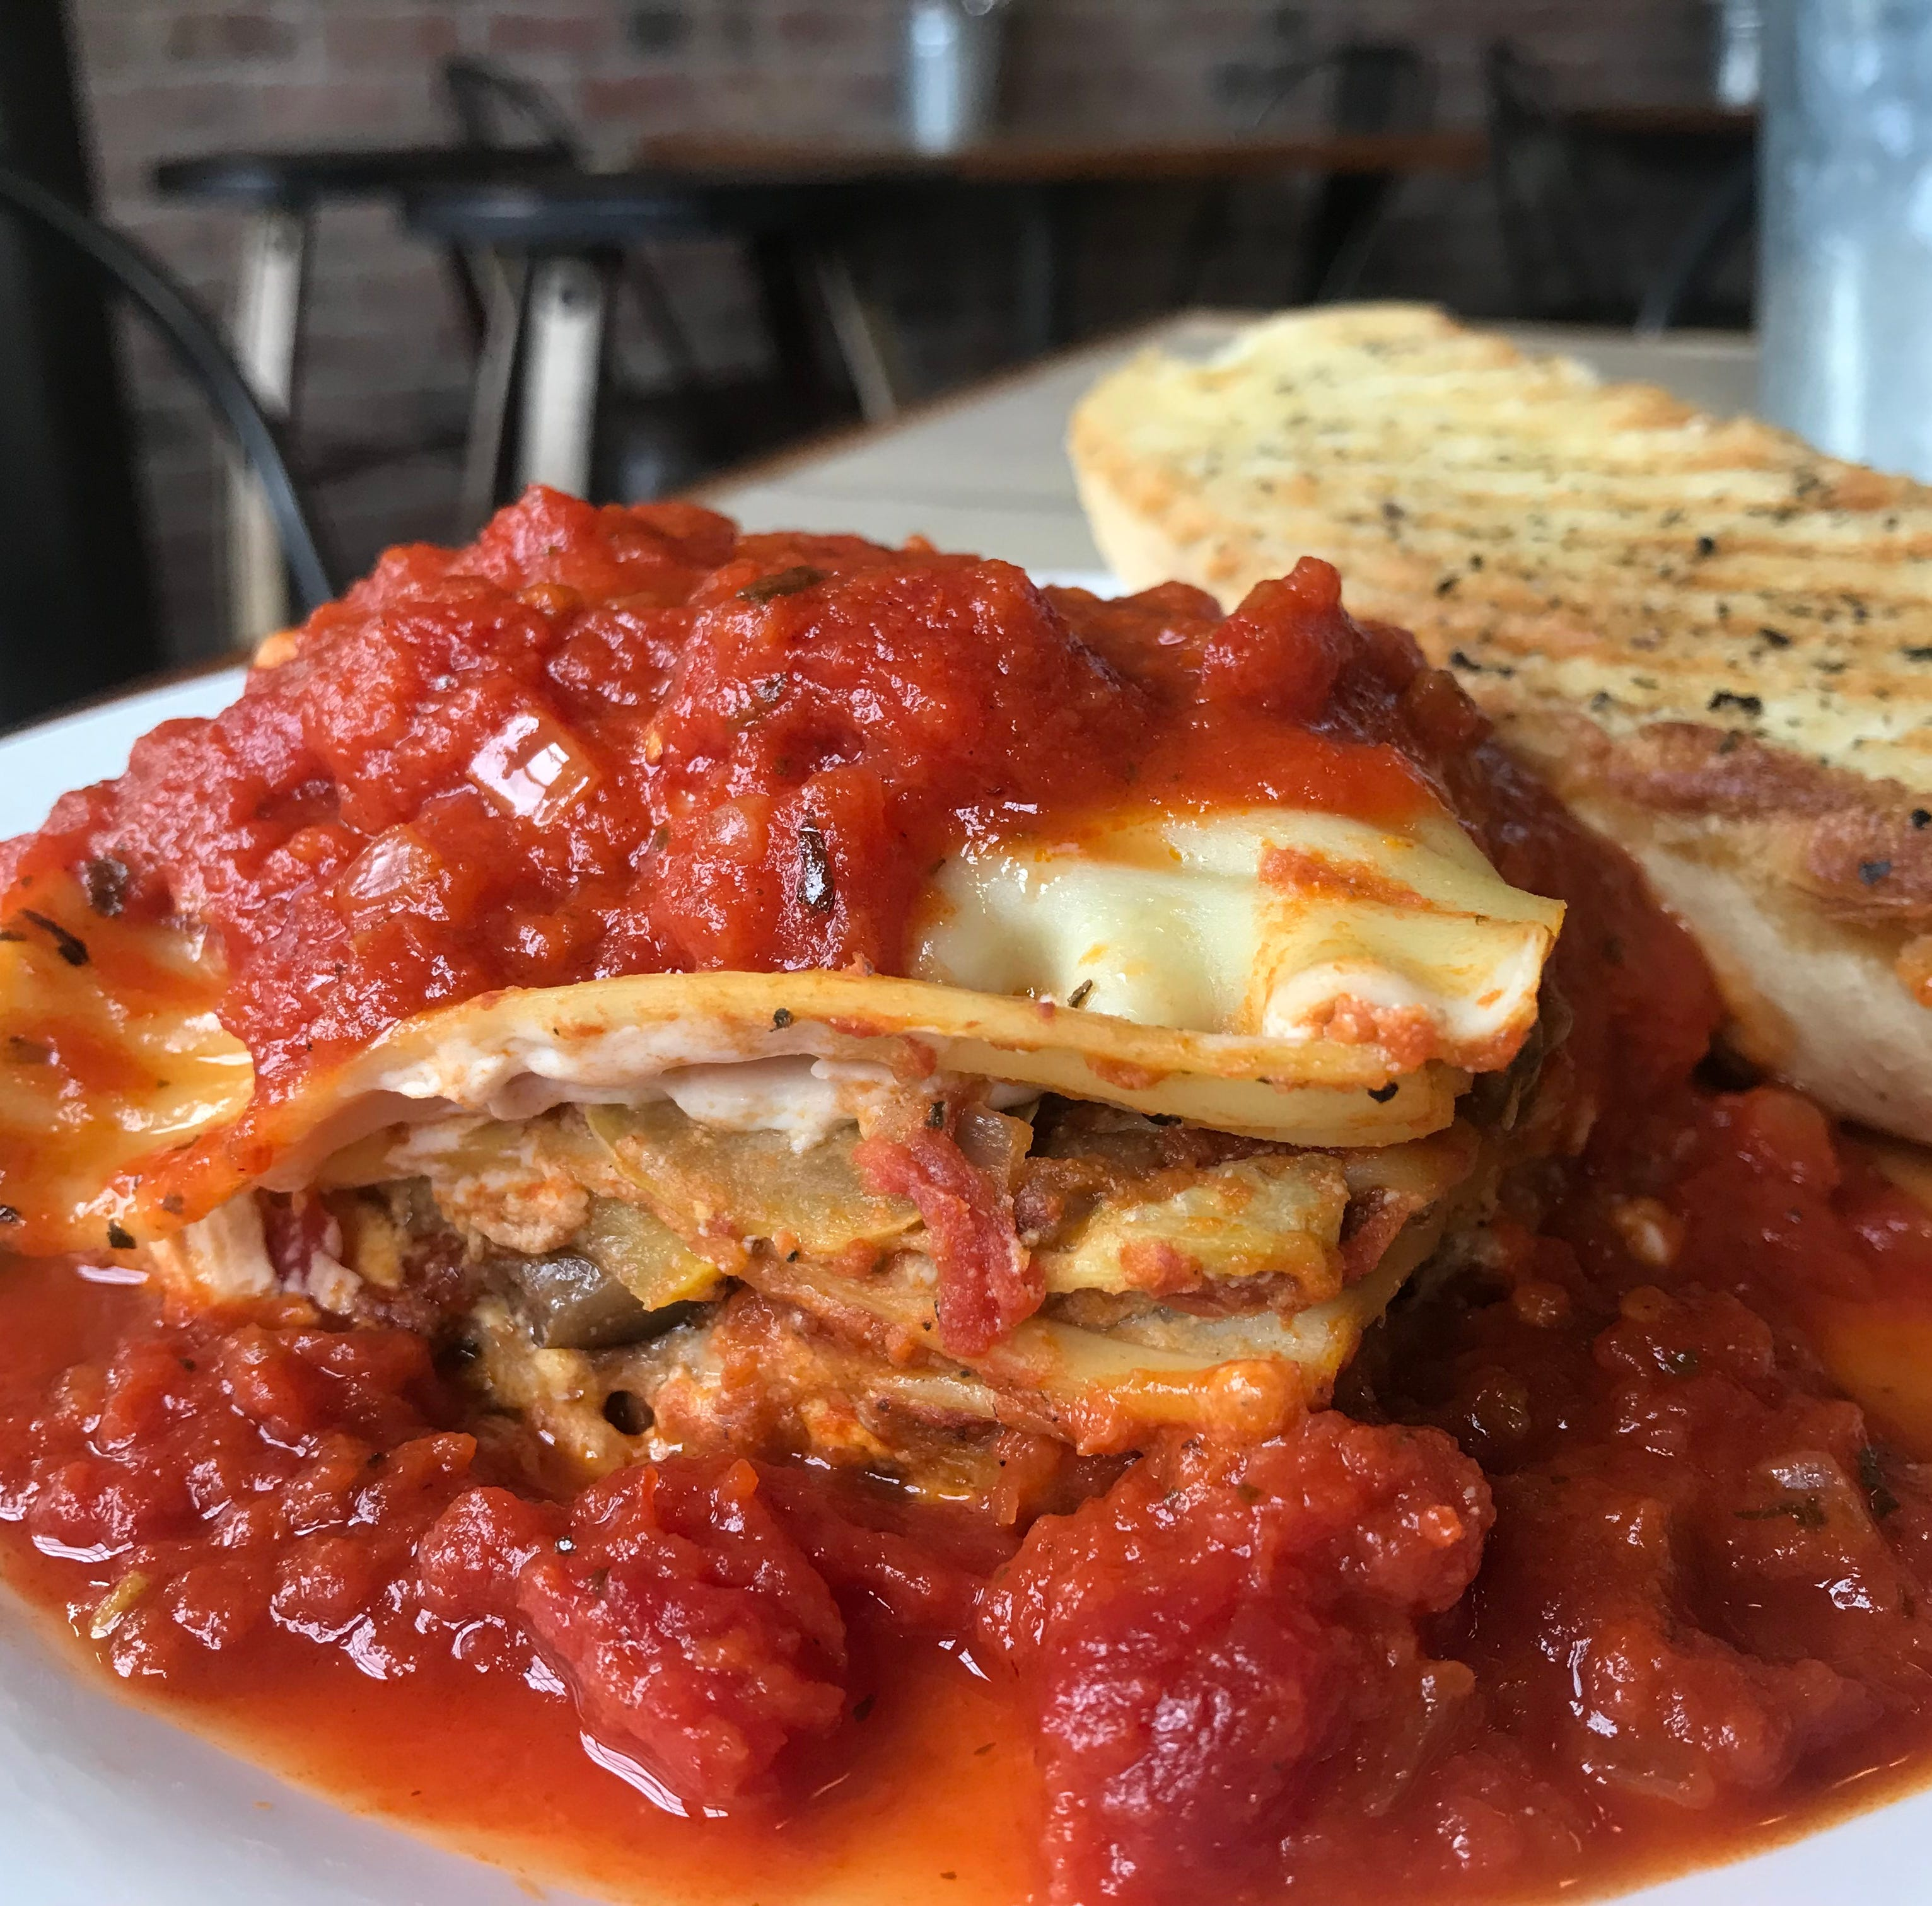 Indy's new vegan restaurant makes a lasagna that's so worth the carbs